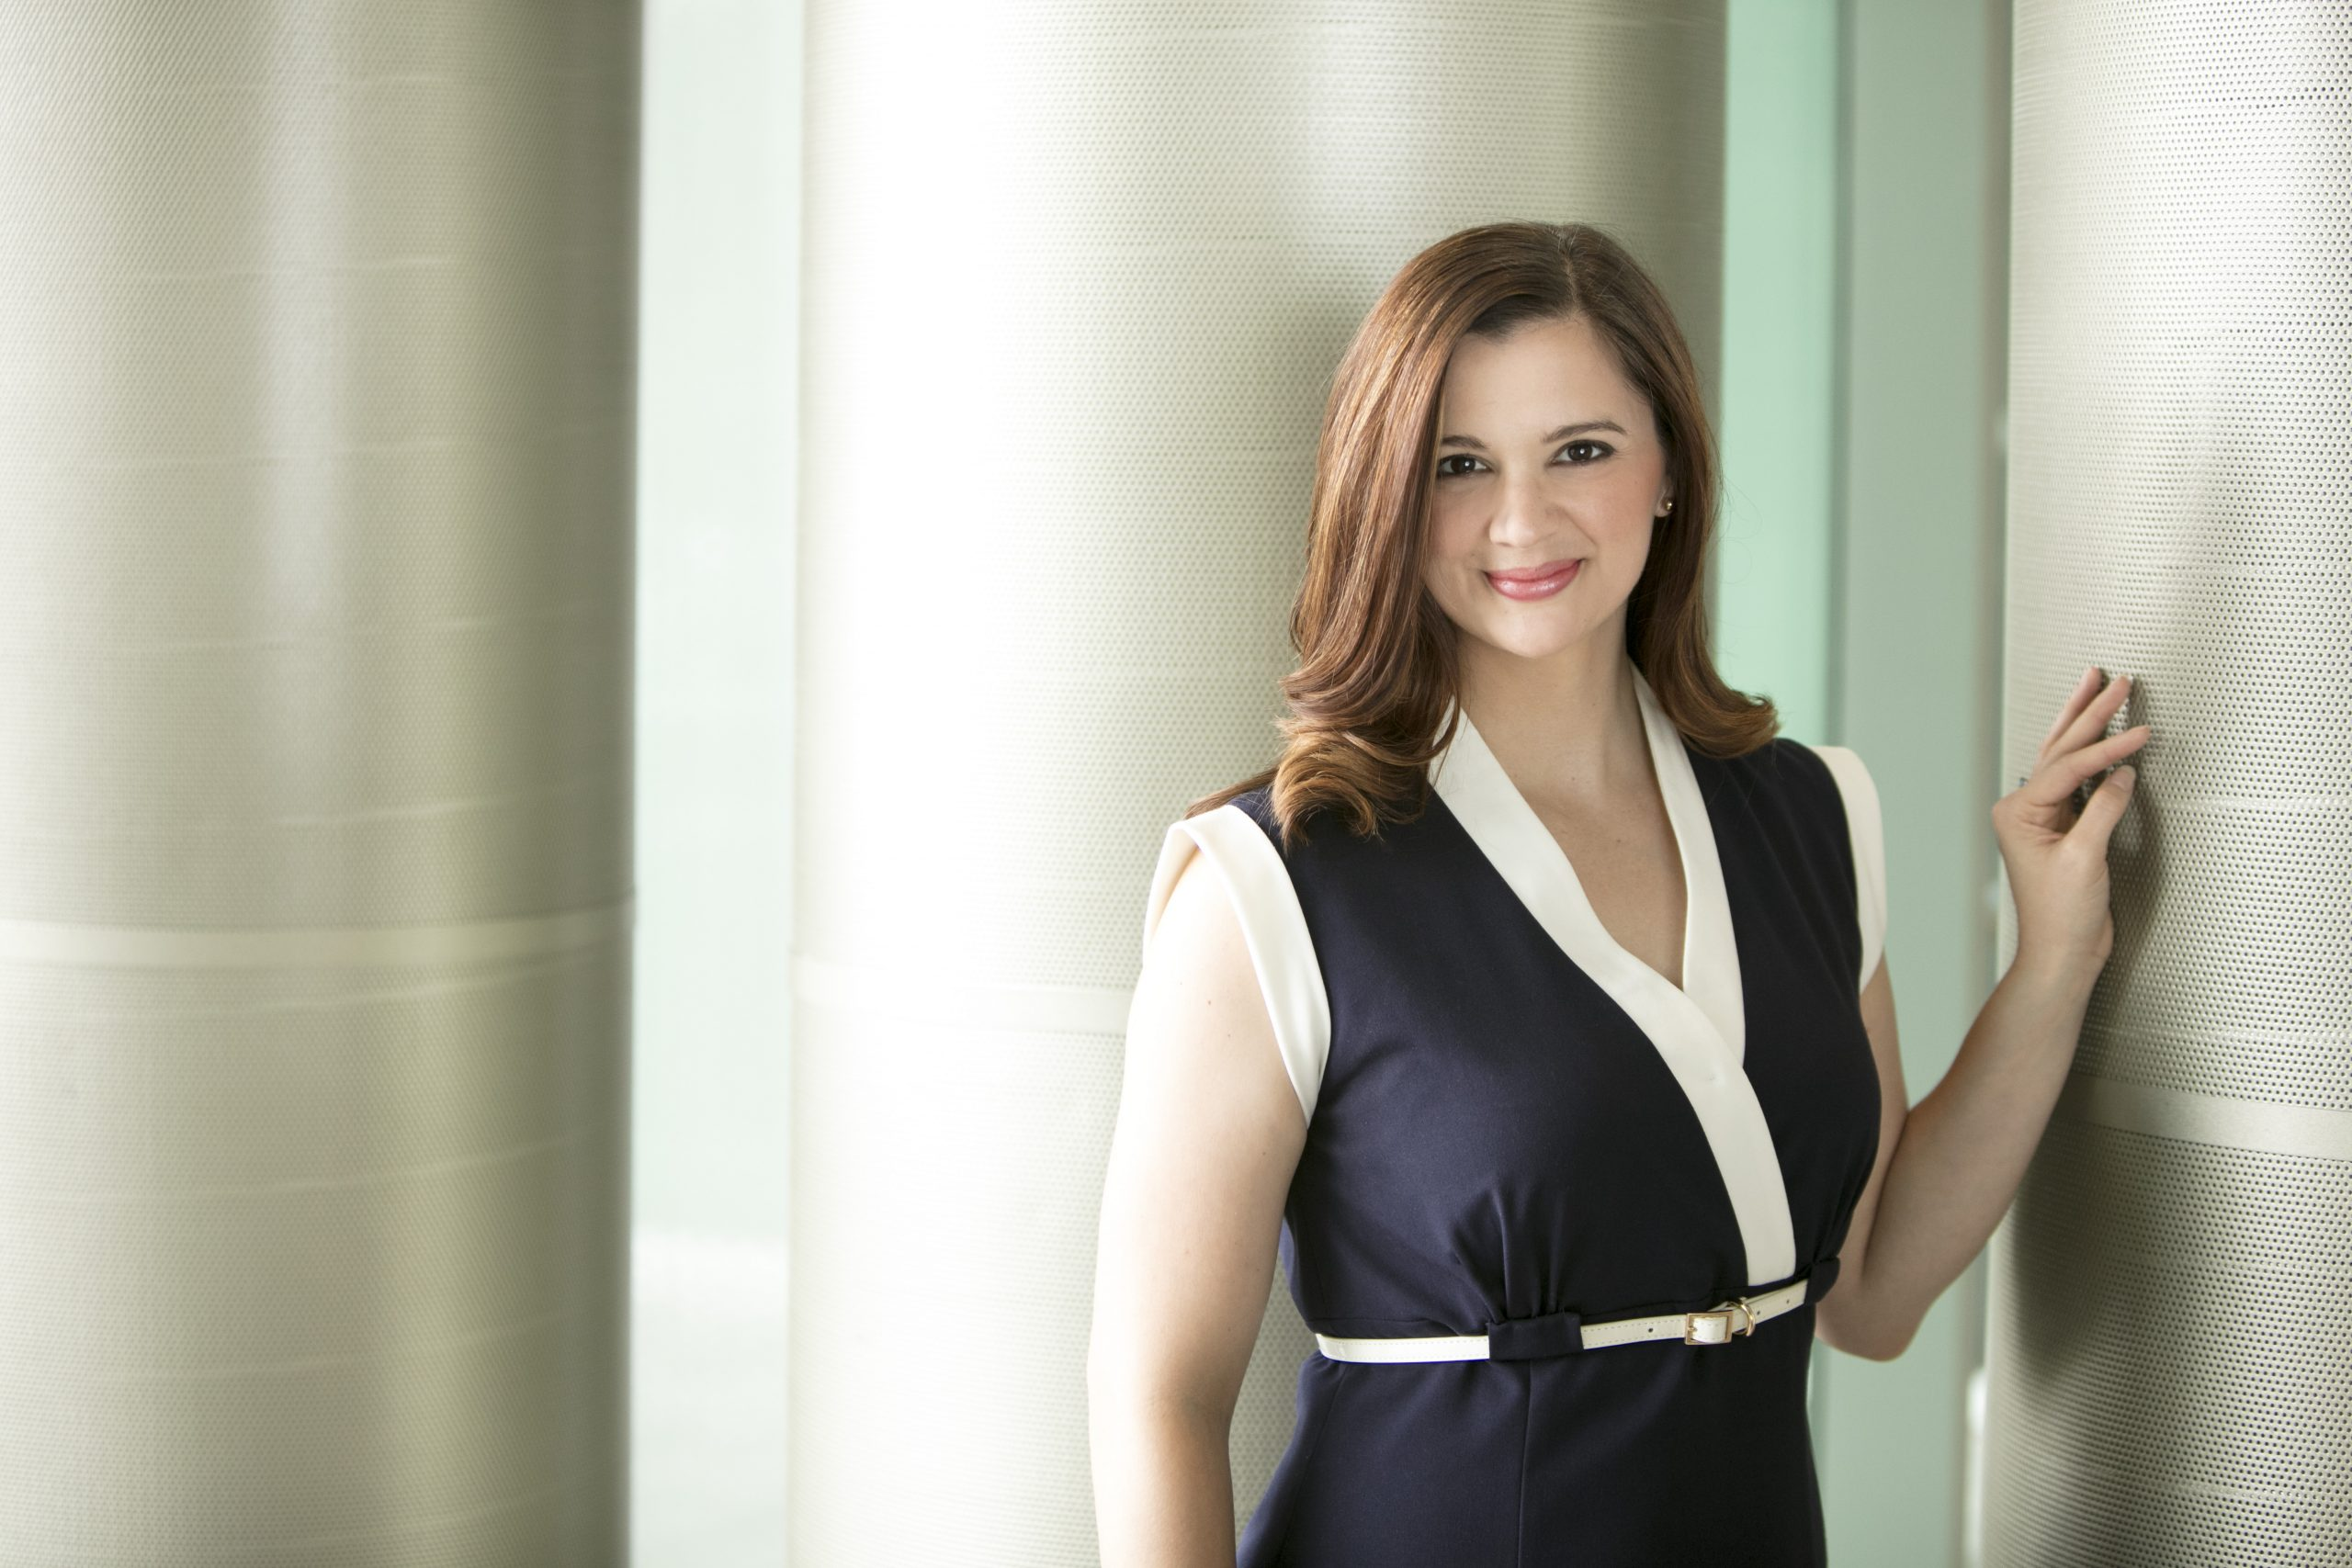 The Center for the Performing Arts Welcomes Zionsville Resident Ana Hammersley